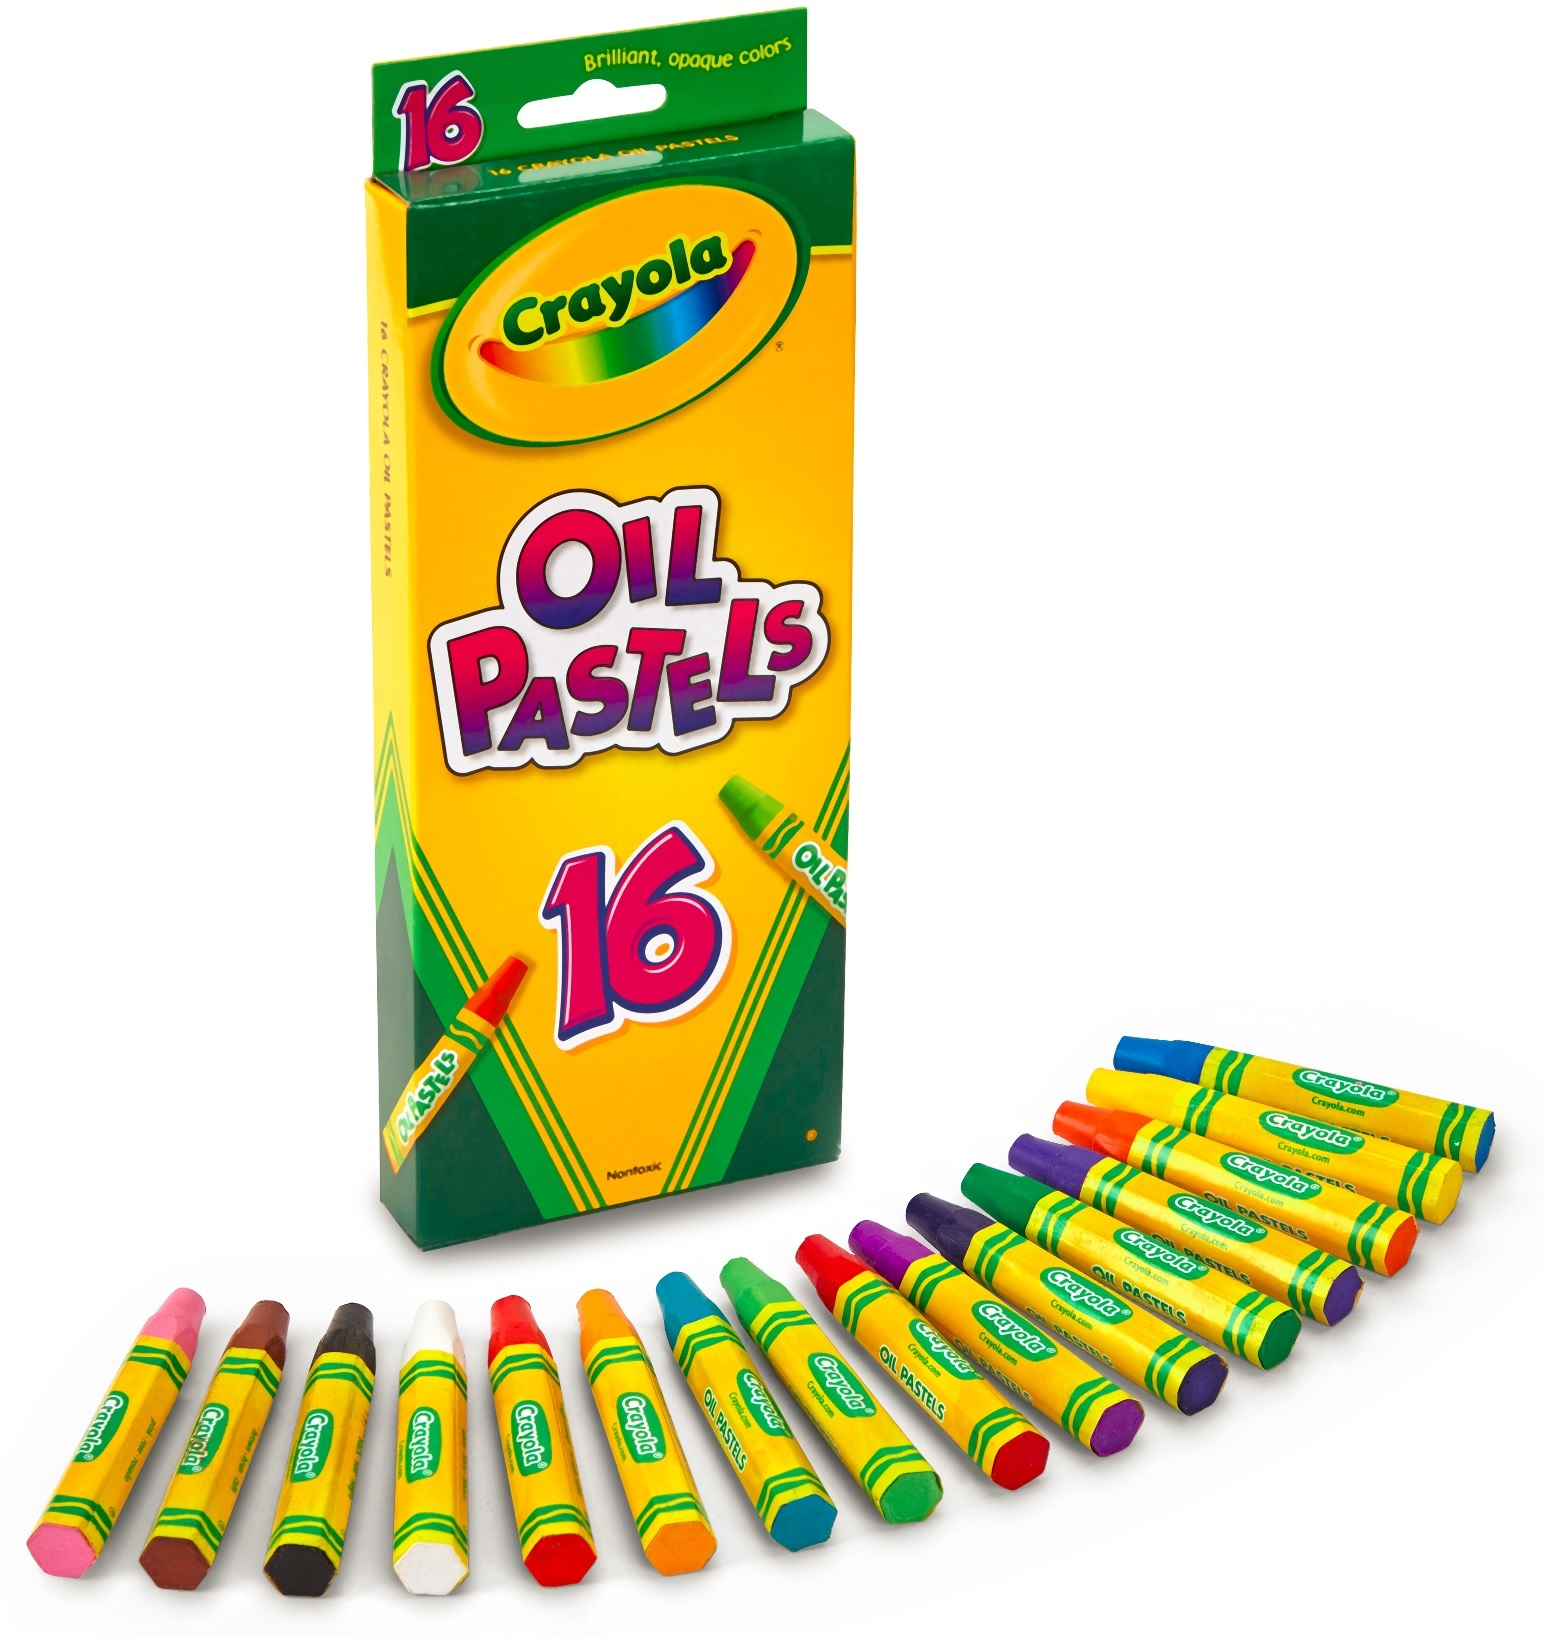 """Crayola 16 count Colored Oil Pastel Sticks, 2-15 16""""x1 2"""" by Crayola"""